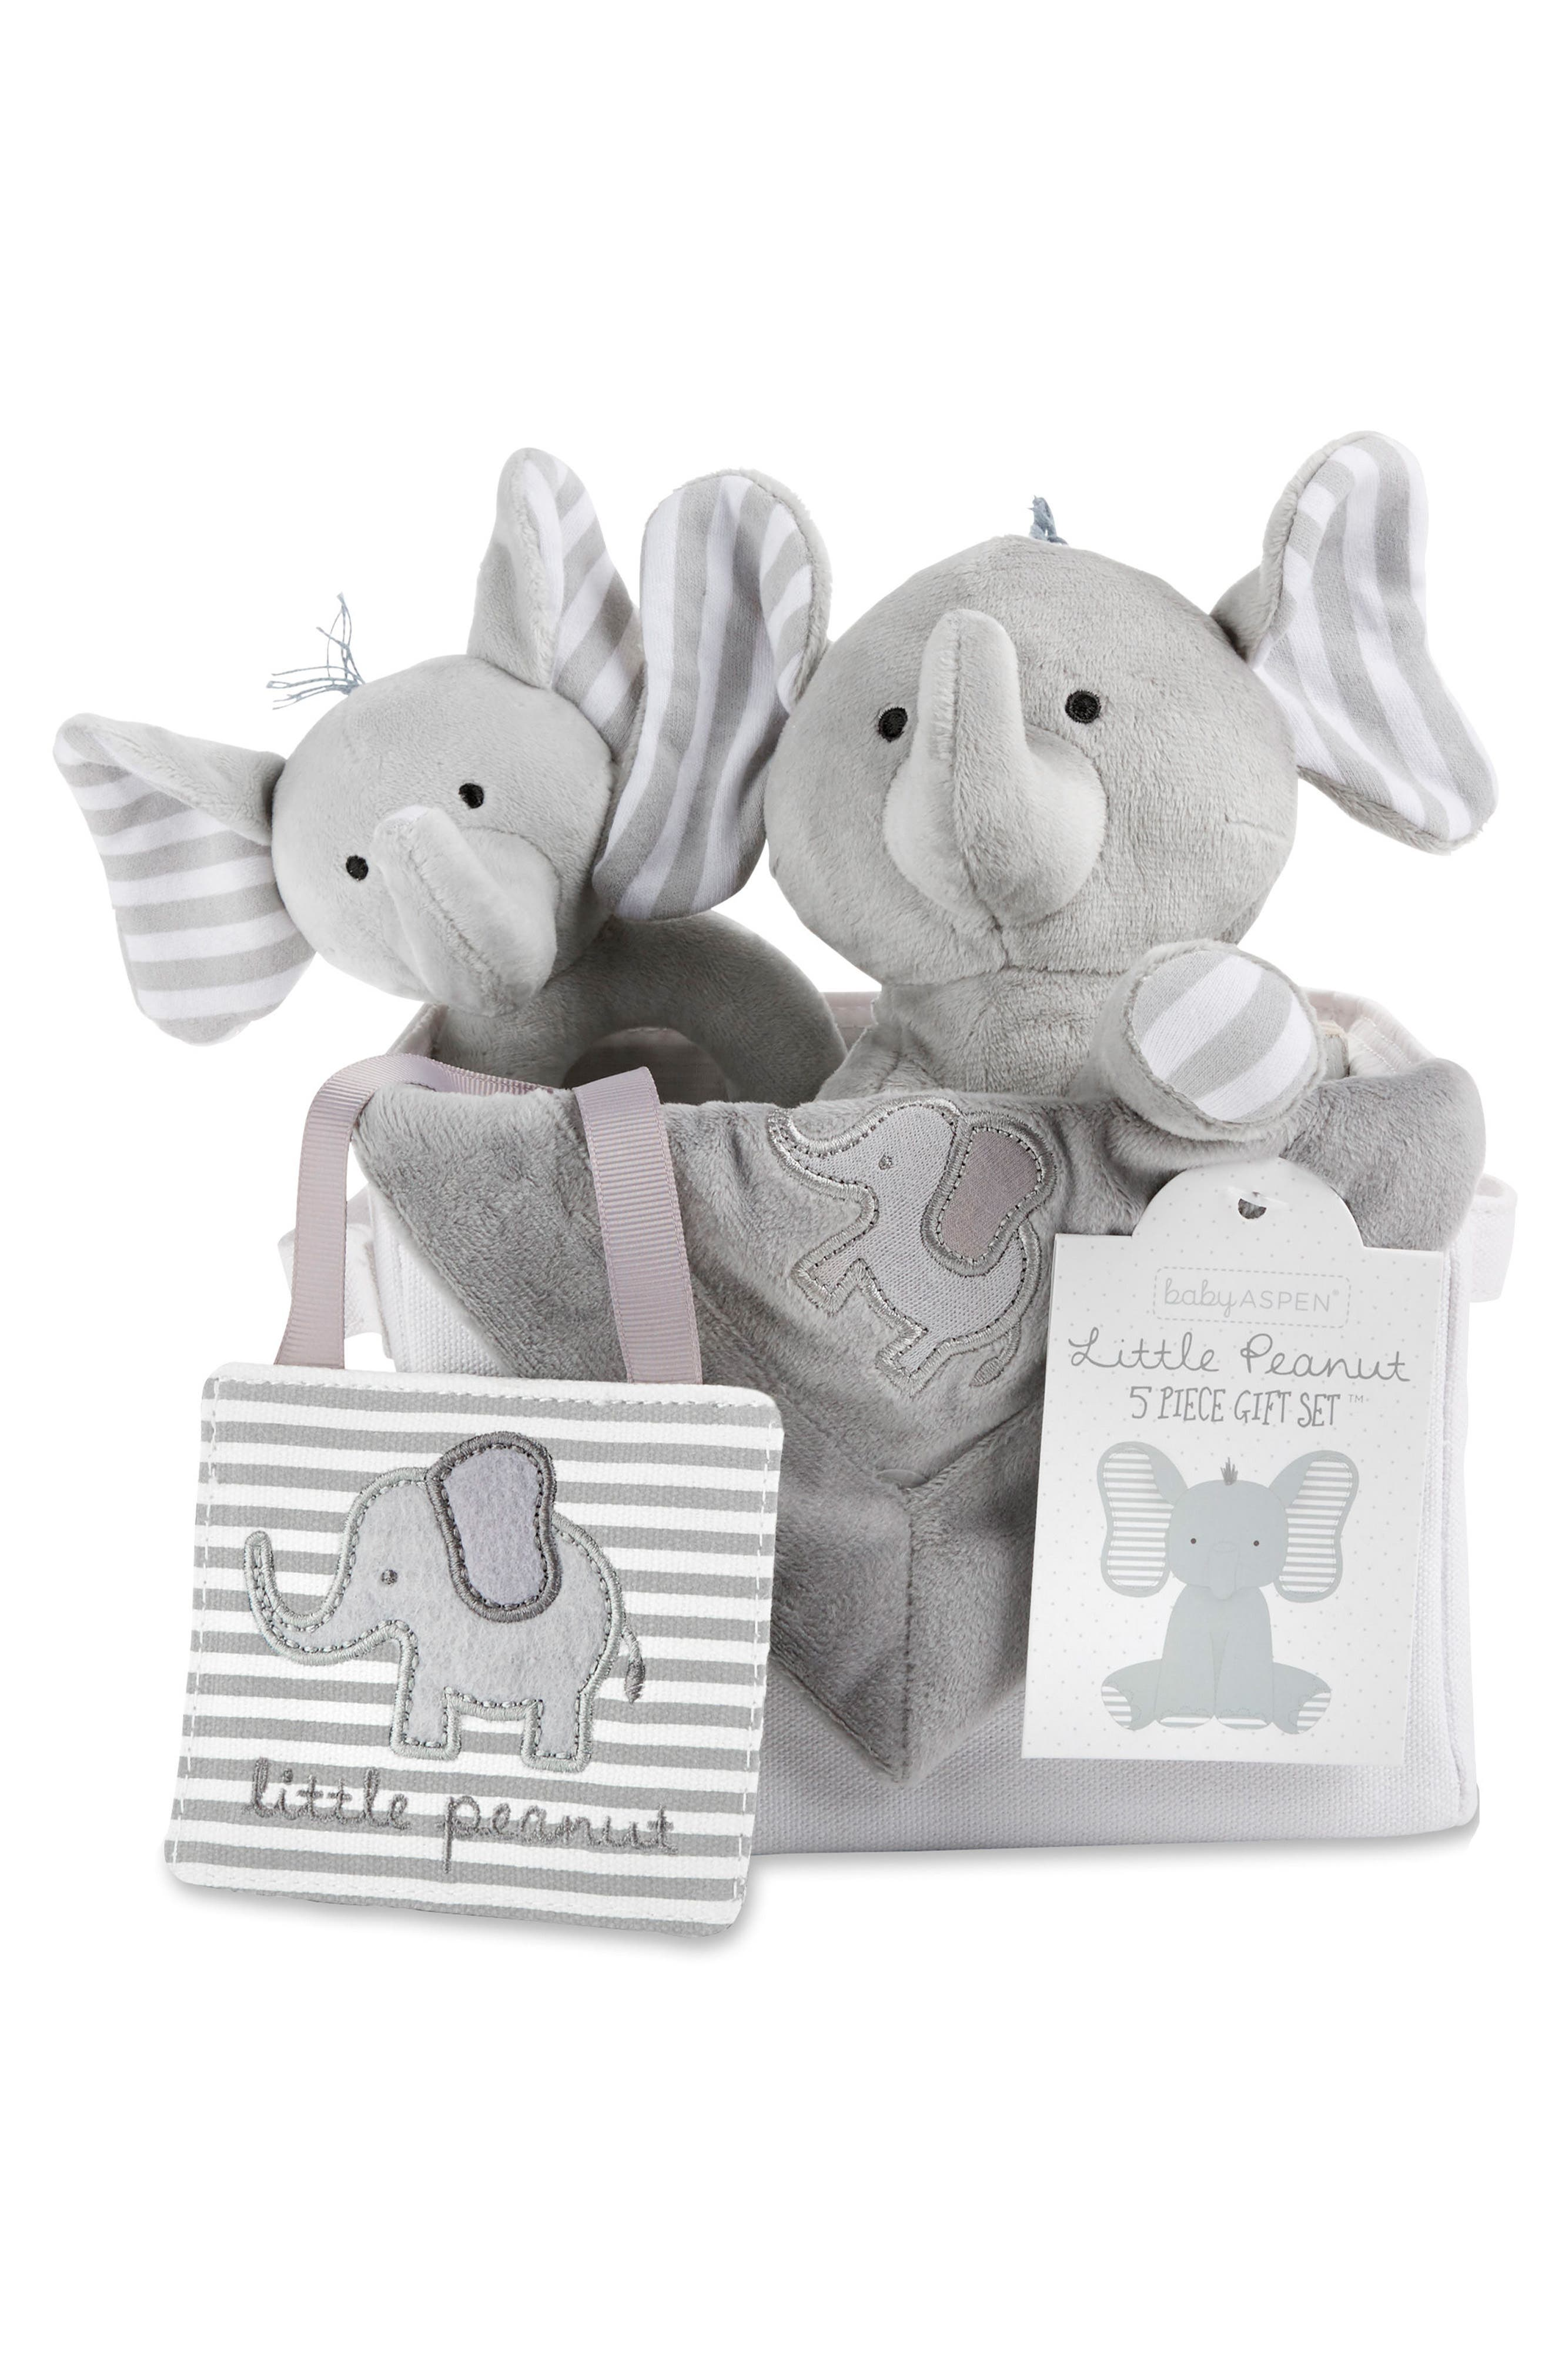 Little Peanut Elephant 5-Piece Gift Set,                             Alternate thumbnail 2, color,                             GREY AND WHITE